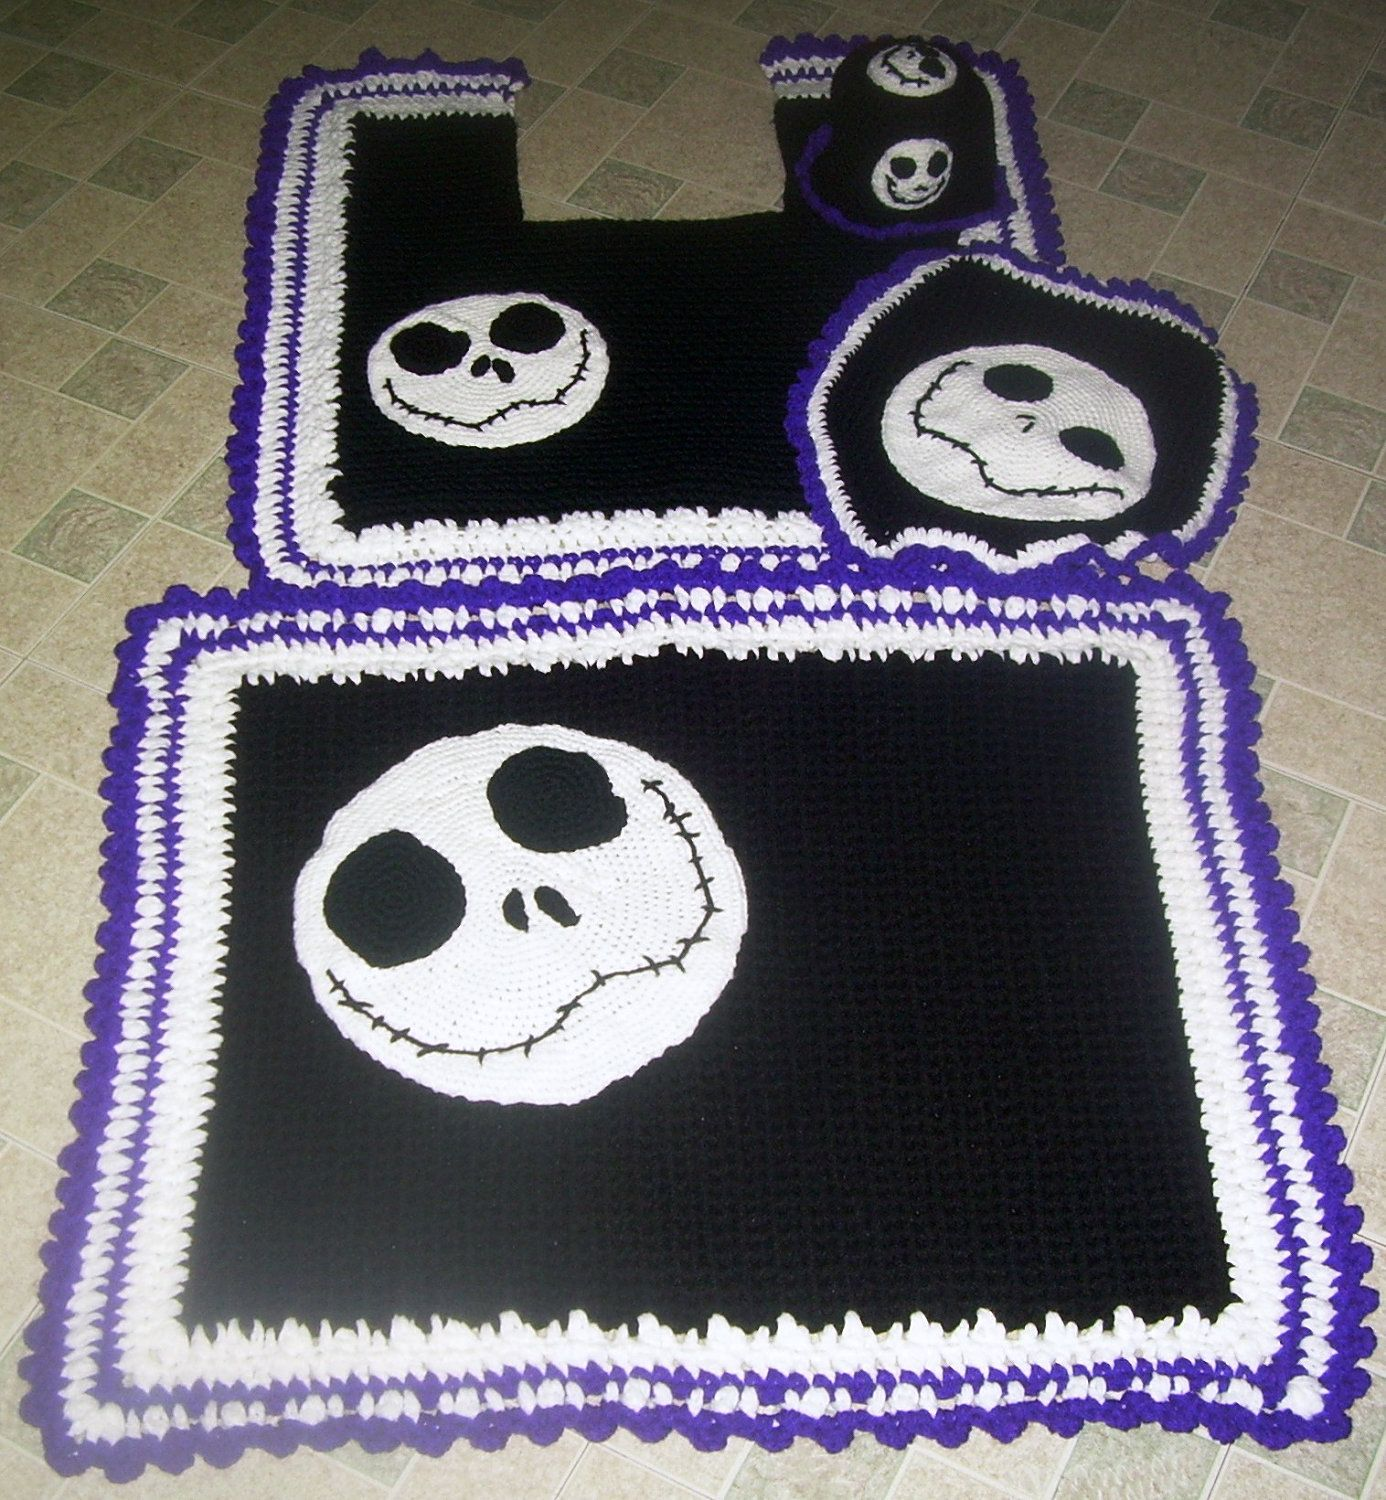 Jack skellington nightmare before christmas bath set 60 95 via etsy